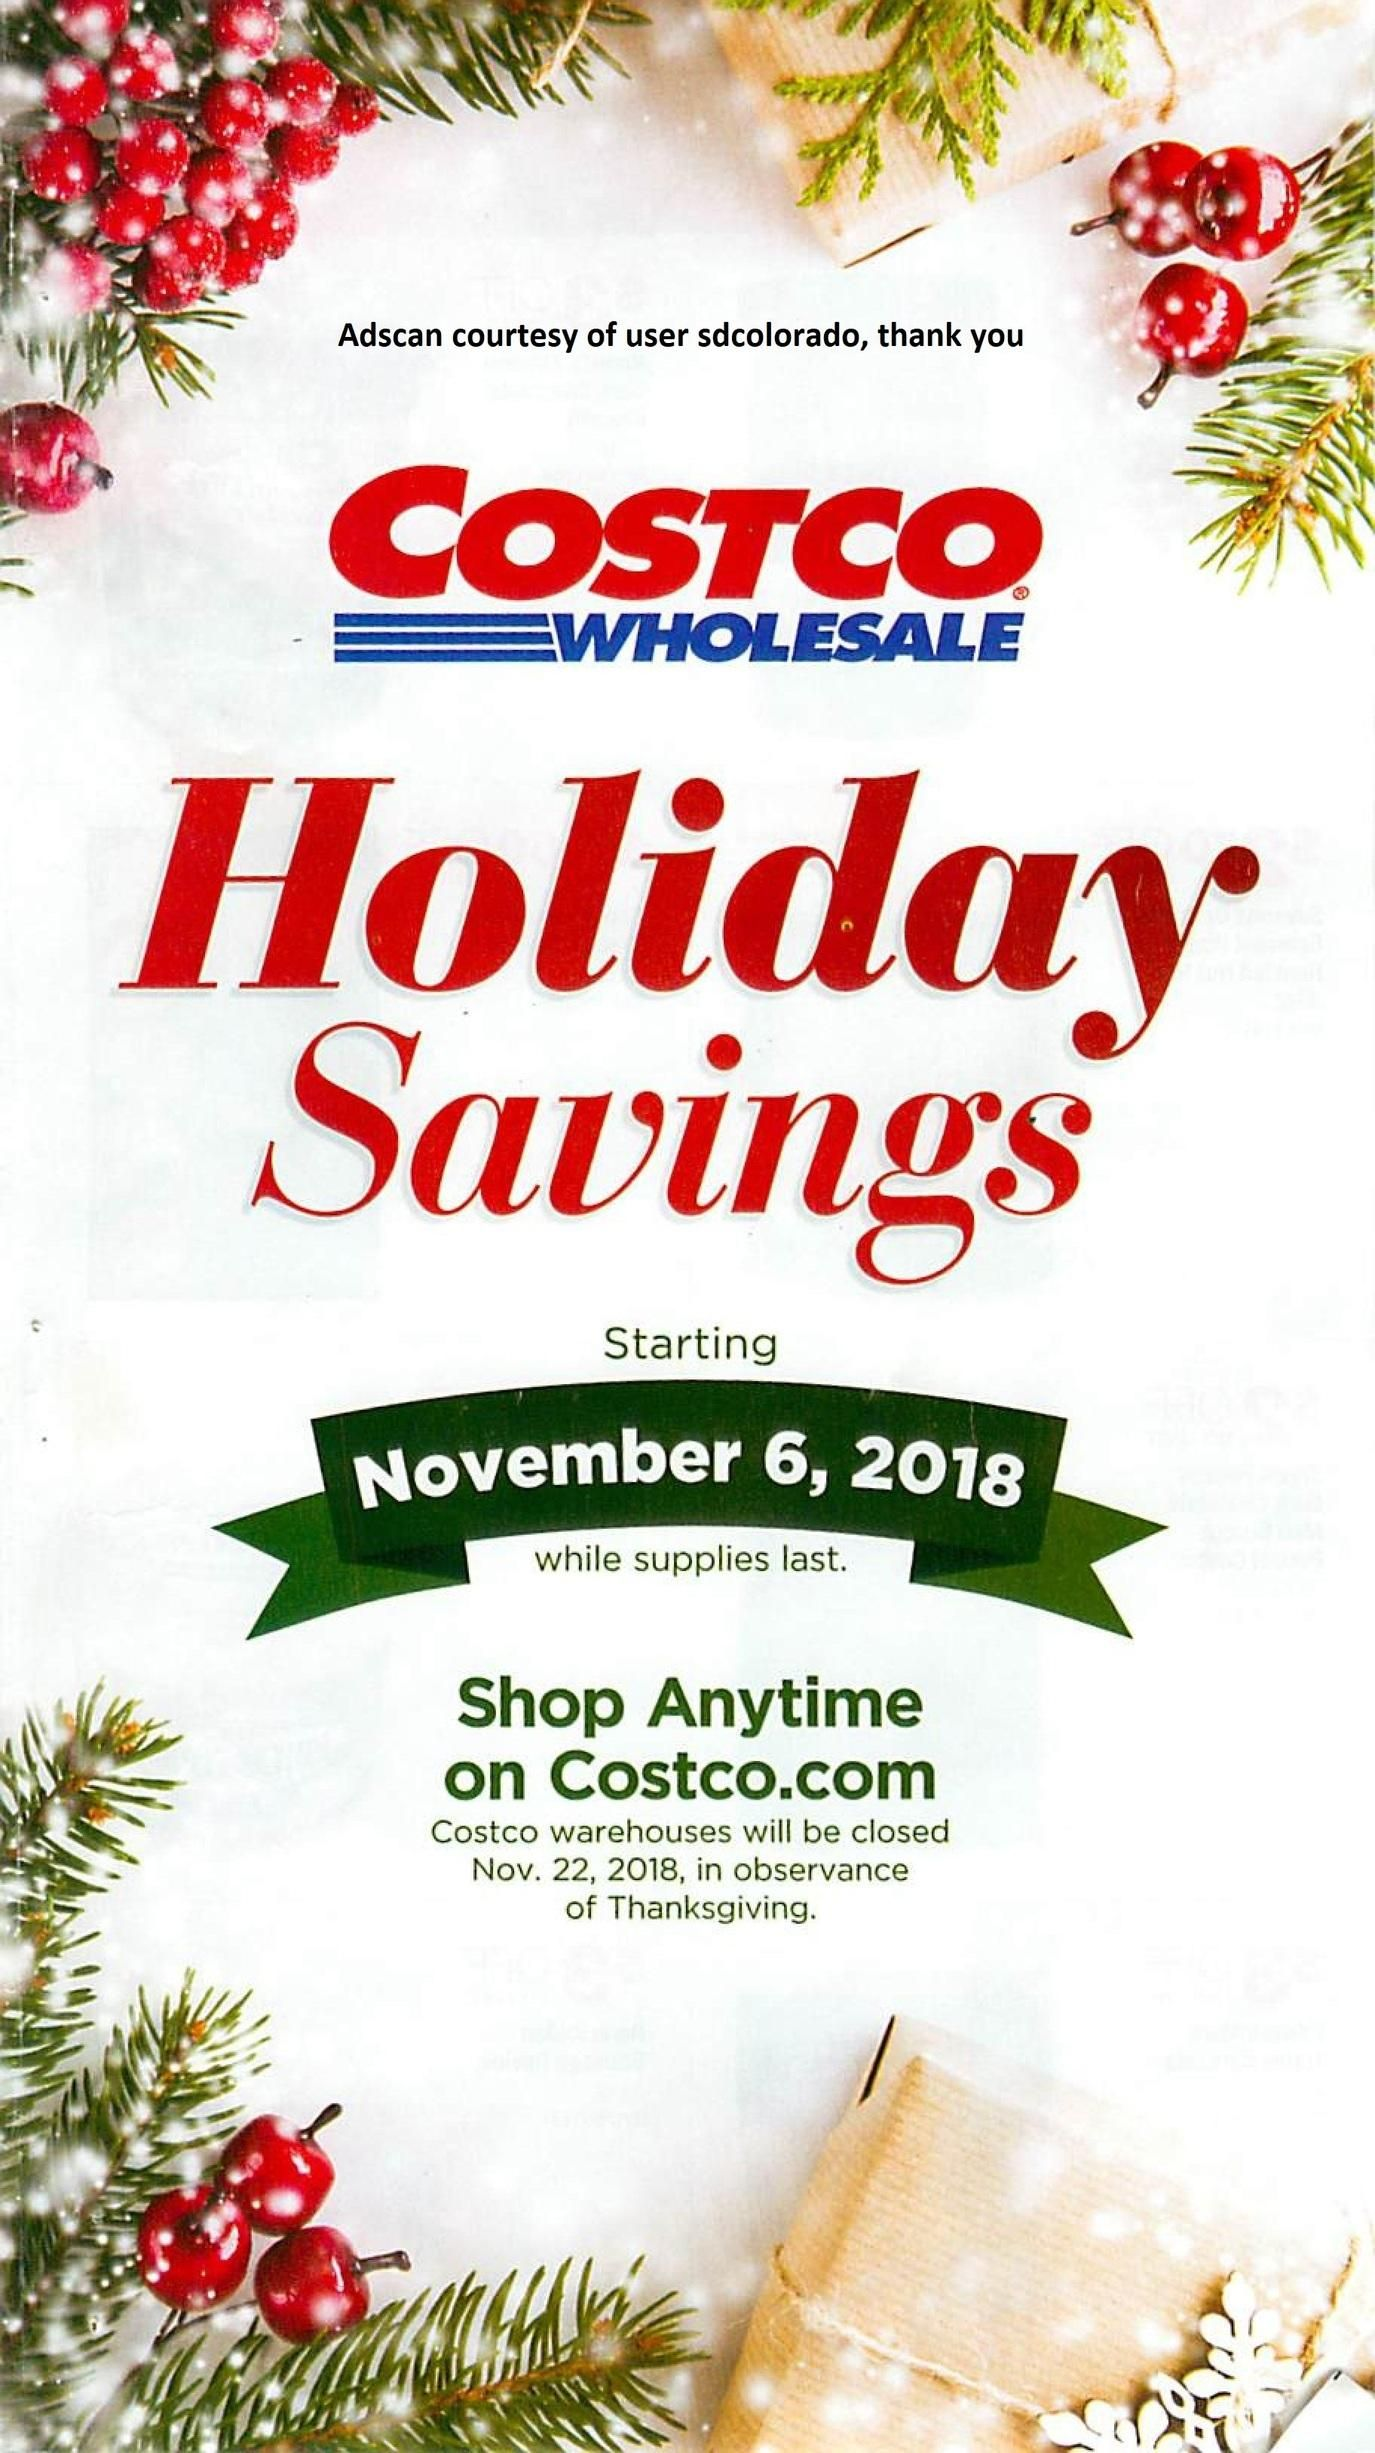 Costco Wholesale 2019 Black Friday Ad Black Friday Ads Holiday